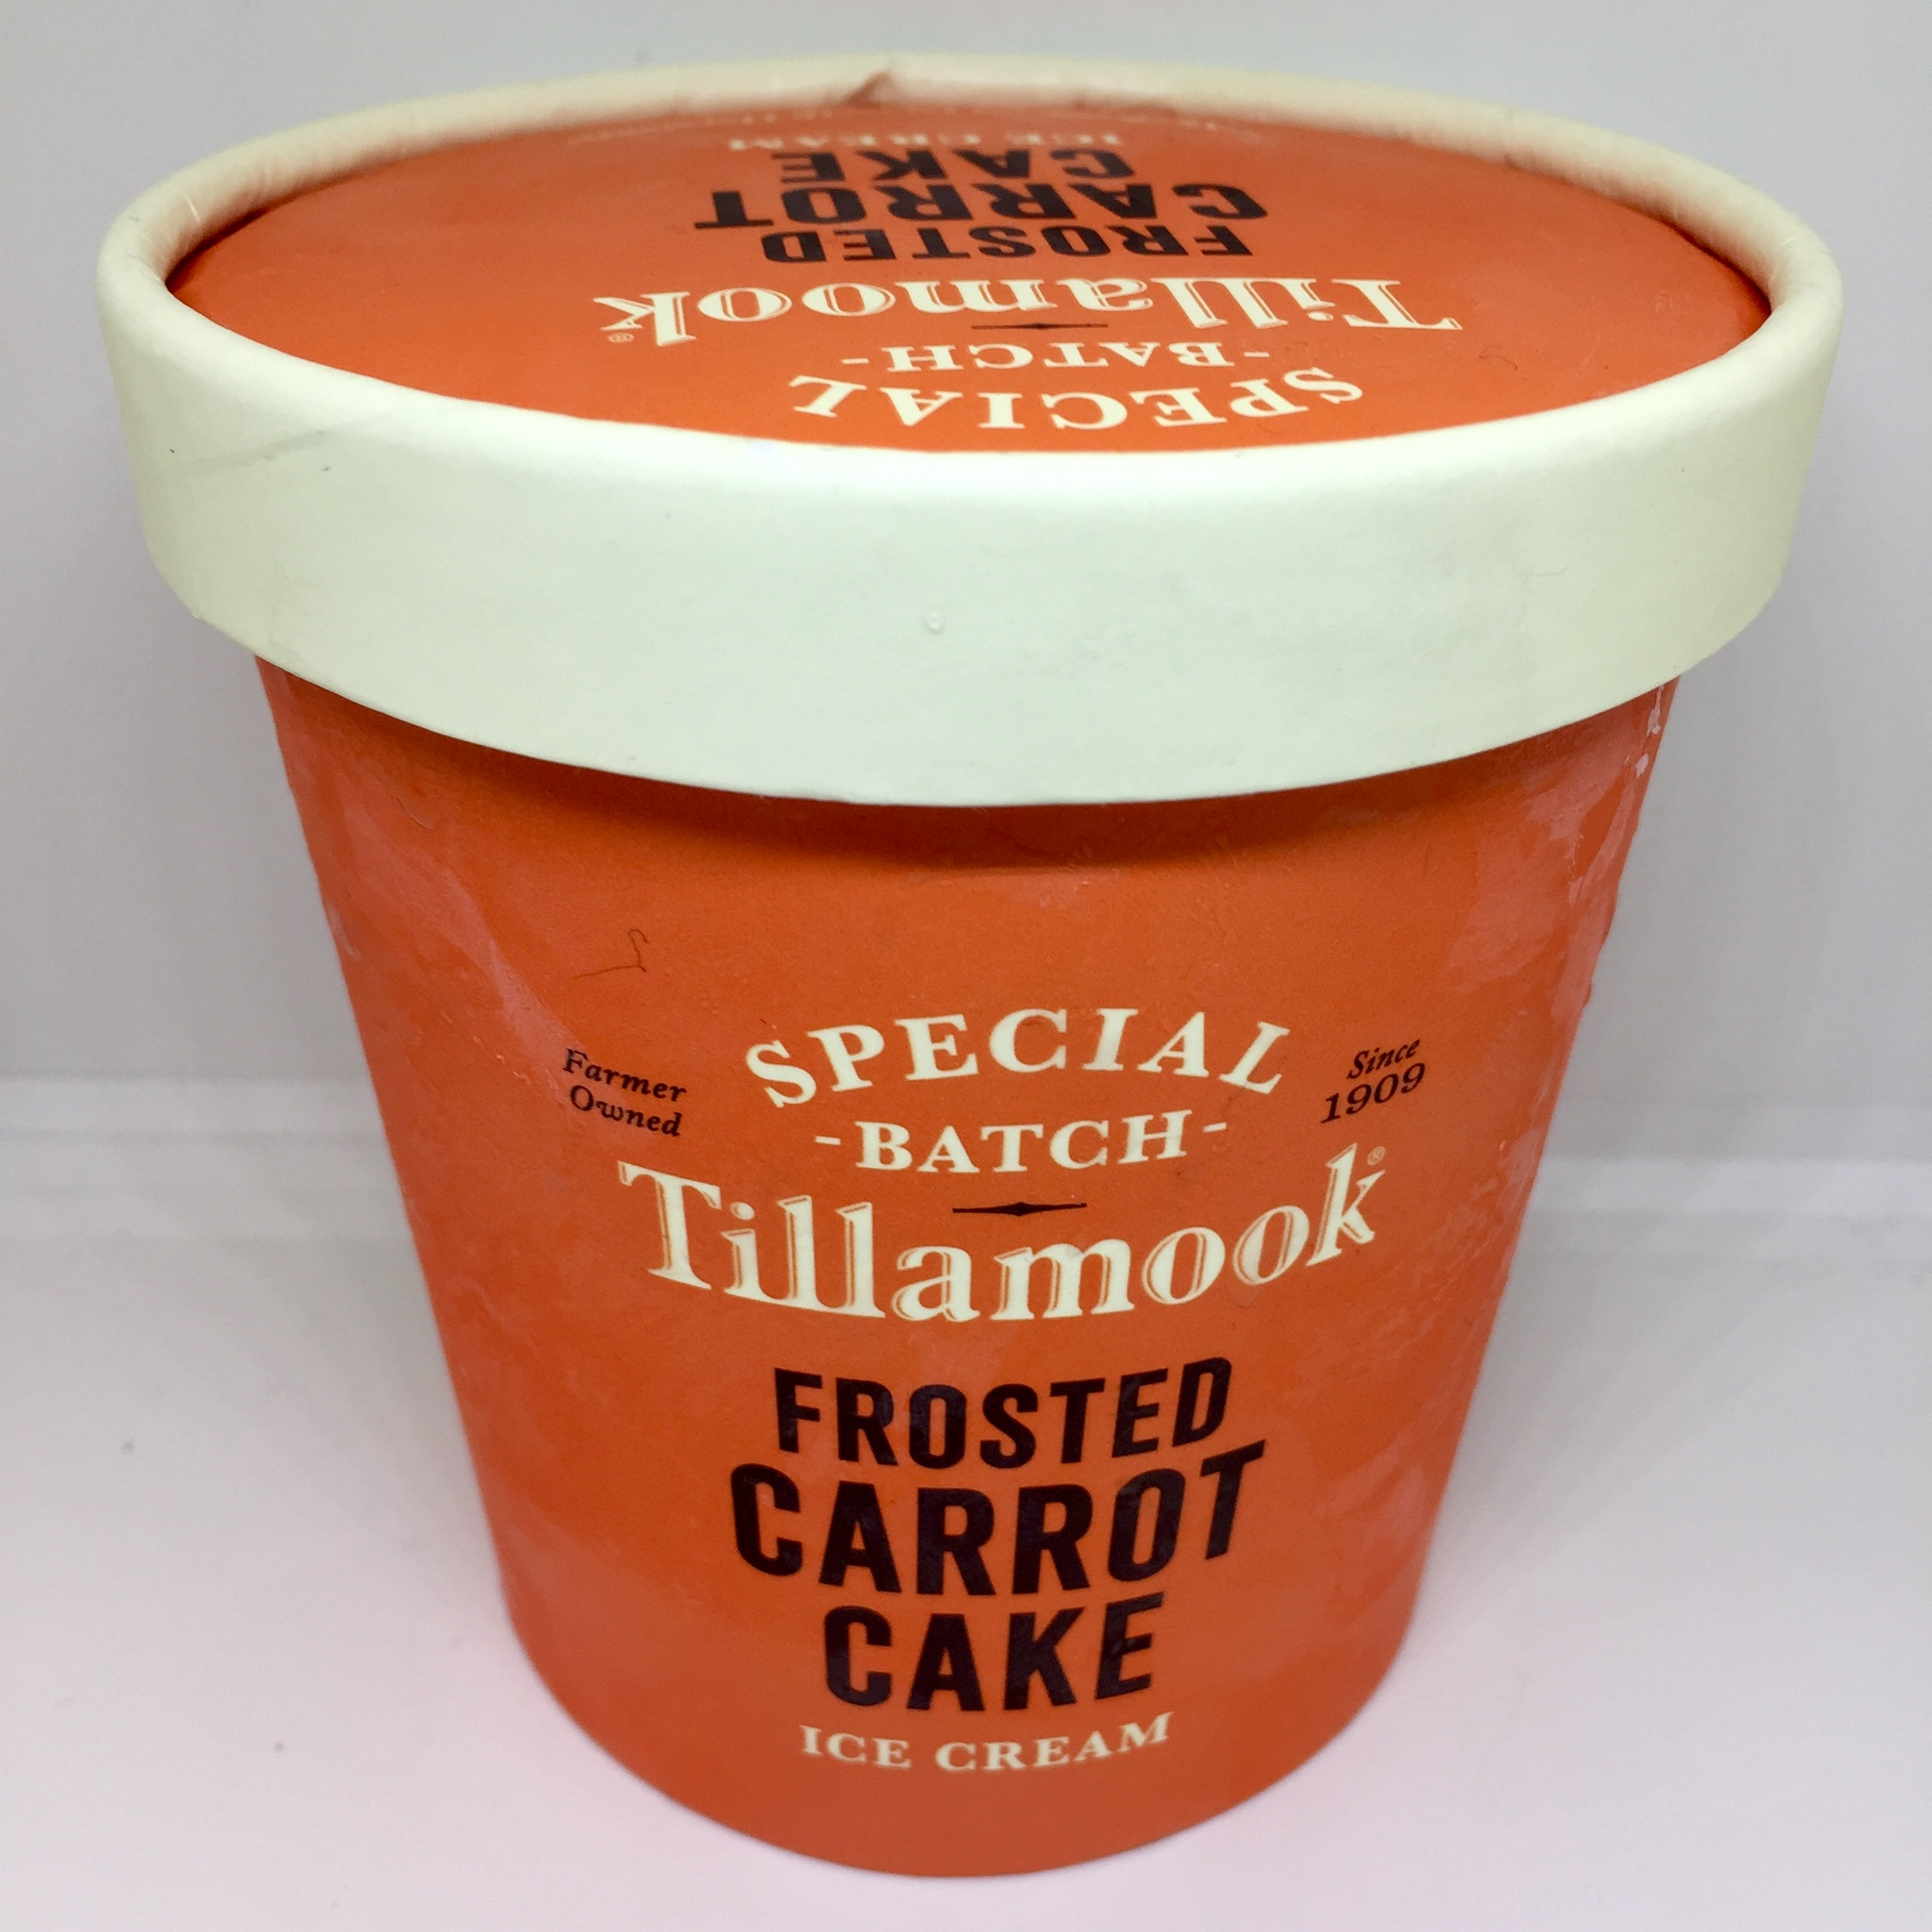 REVIEW Tillamooks Special Batch Frosted Carrot Cake